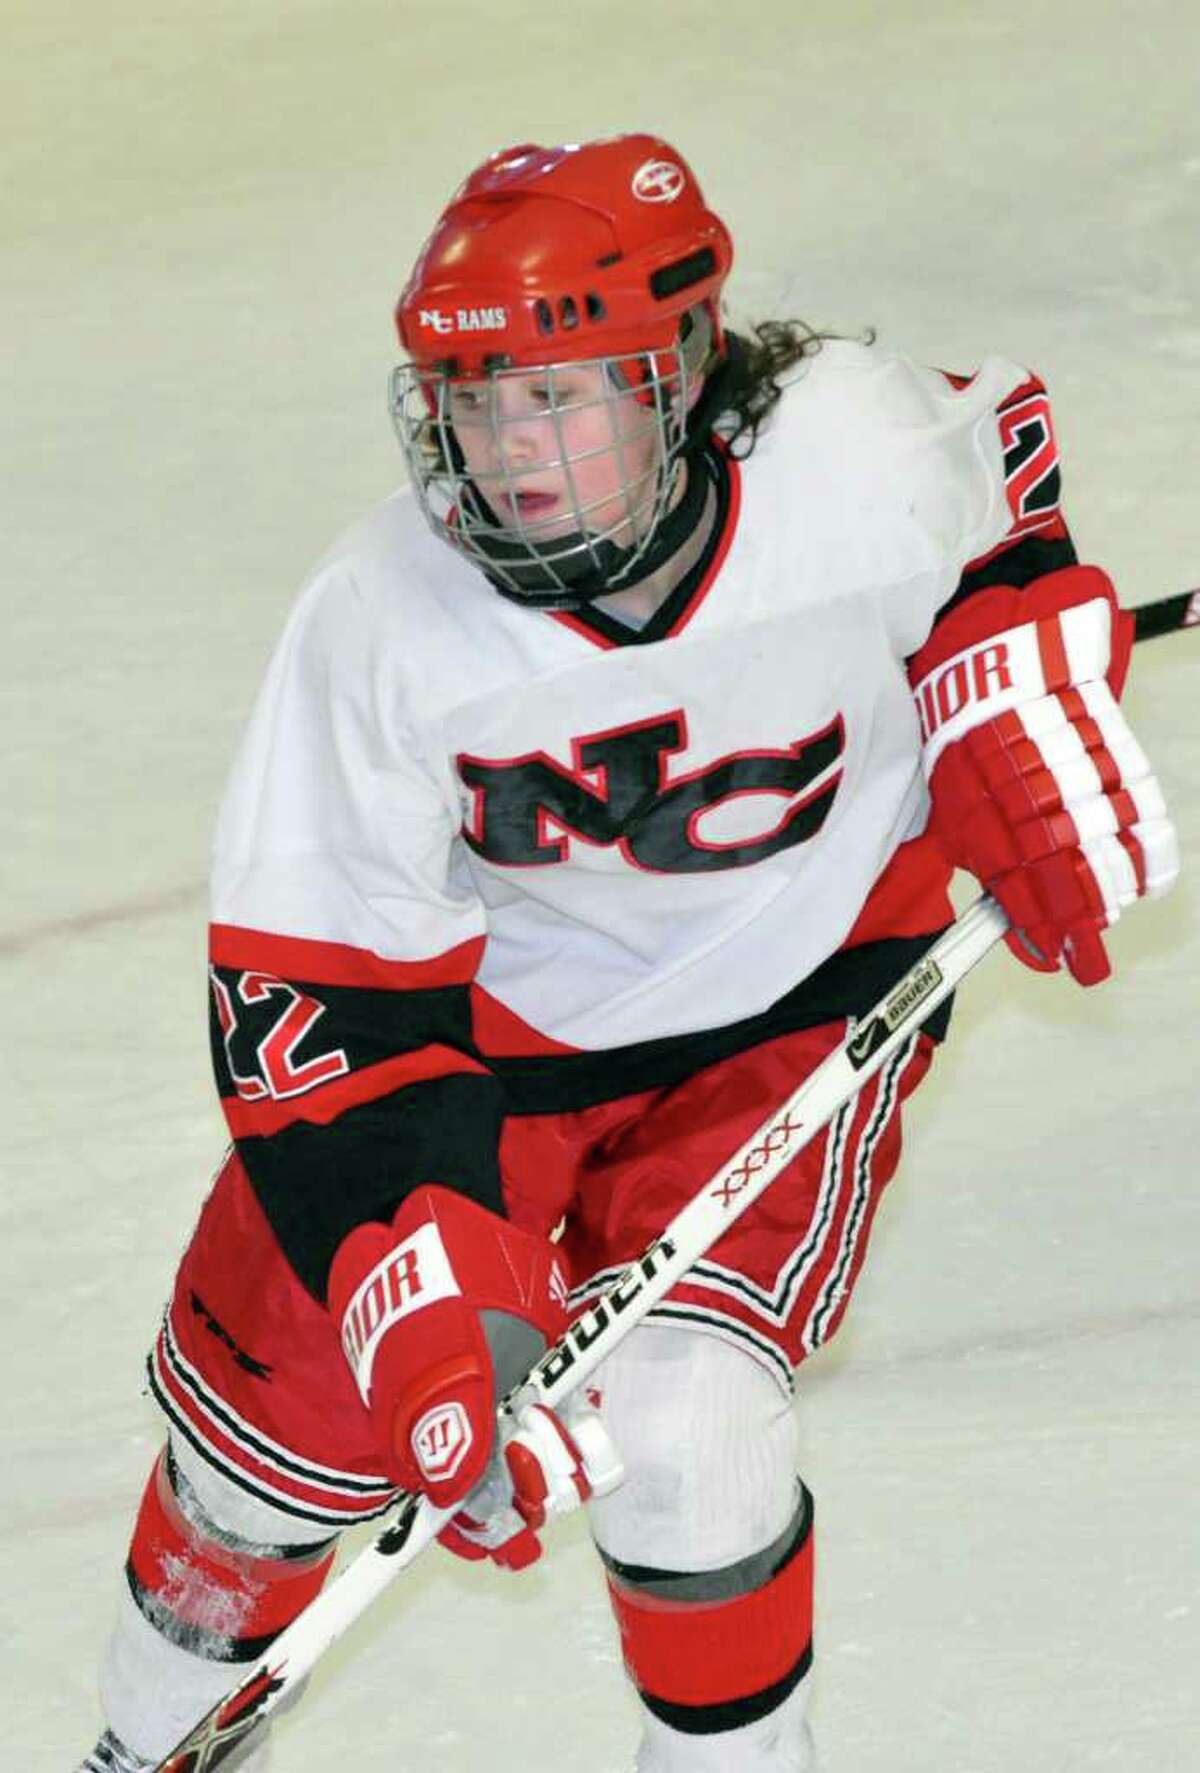 New Canaan's Olivia Hompe during the girls ice hockey game against Morristown, NJ on Monday, Jan. 17, 2011.